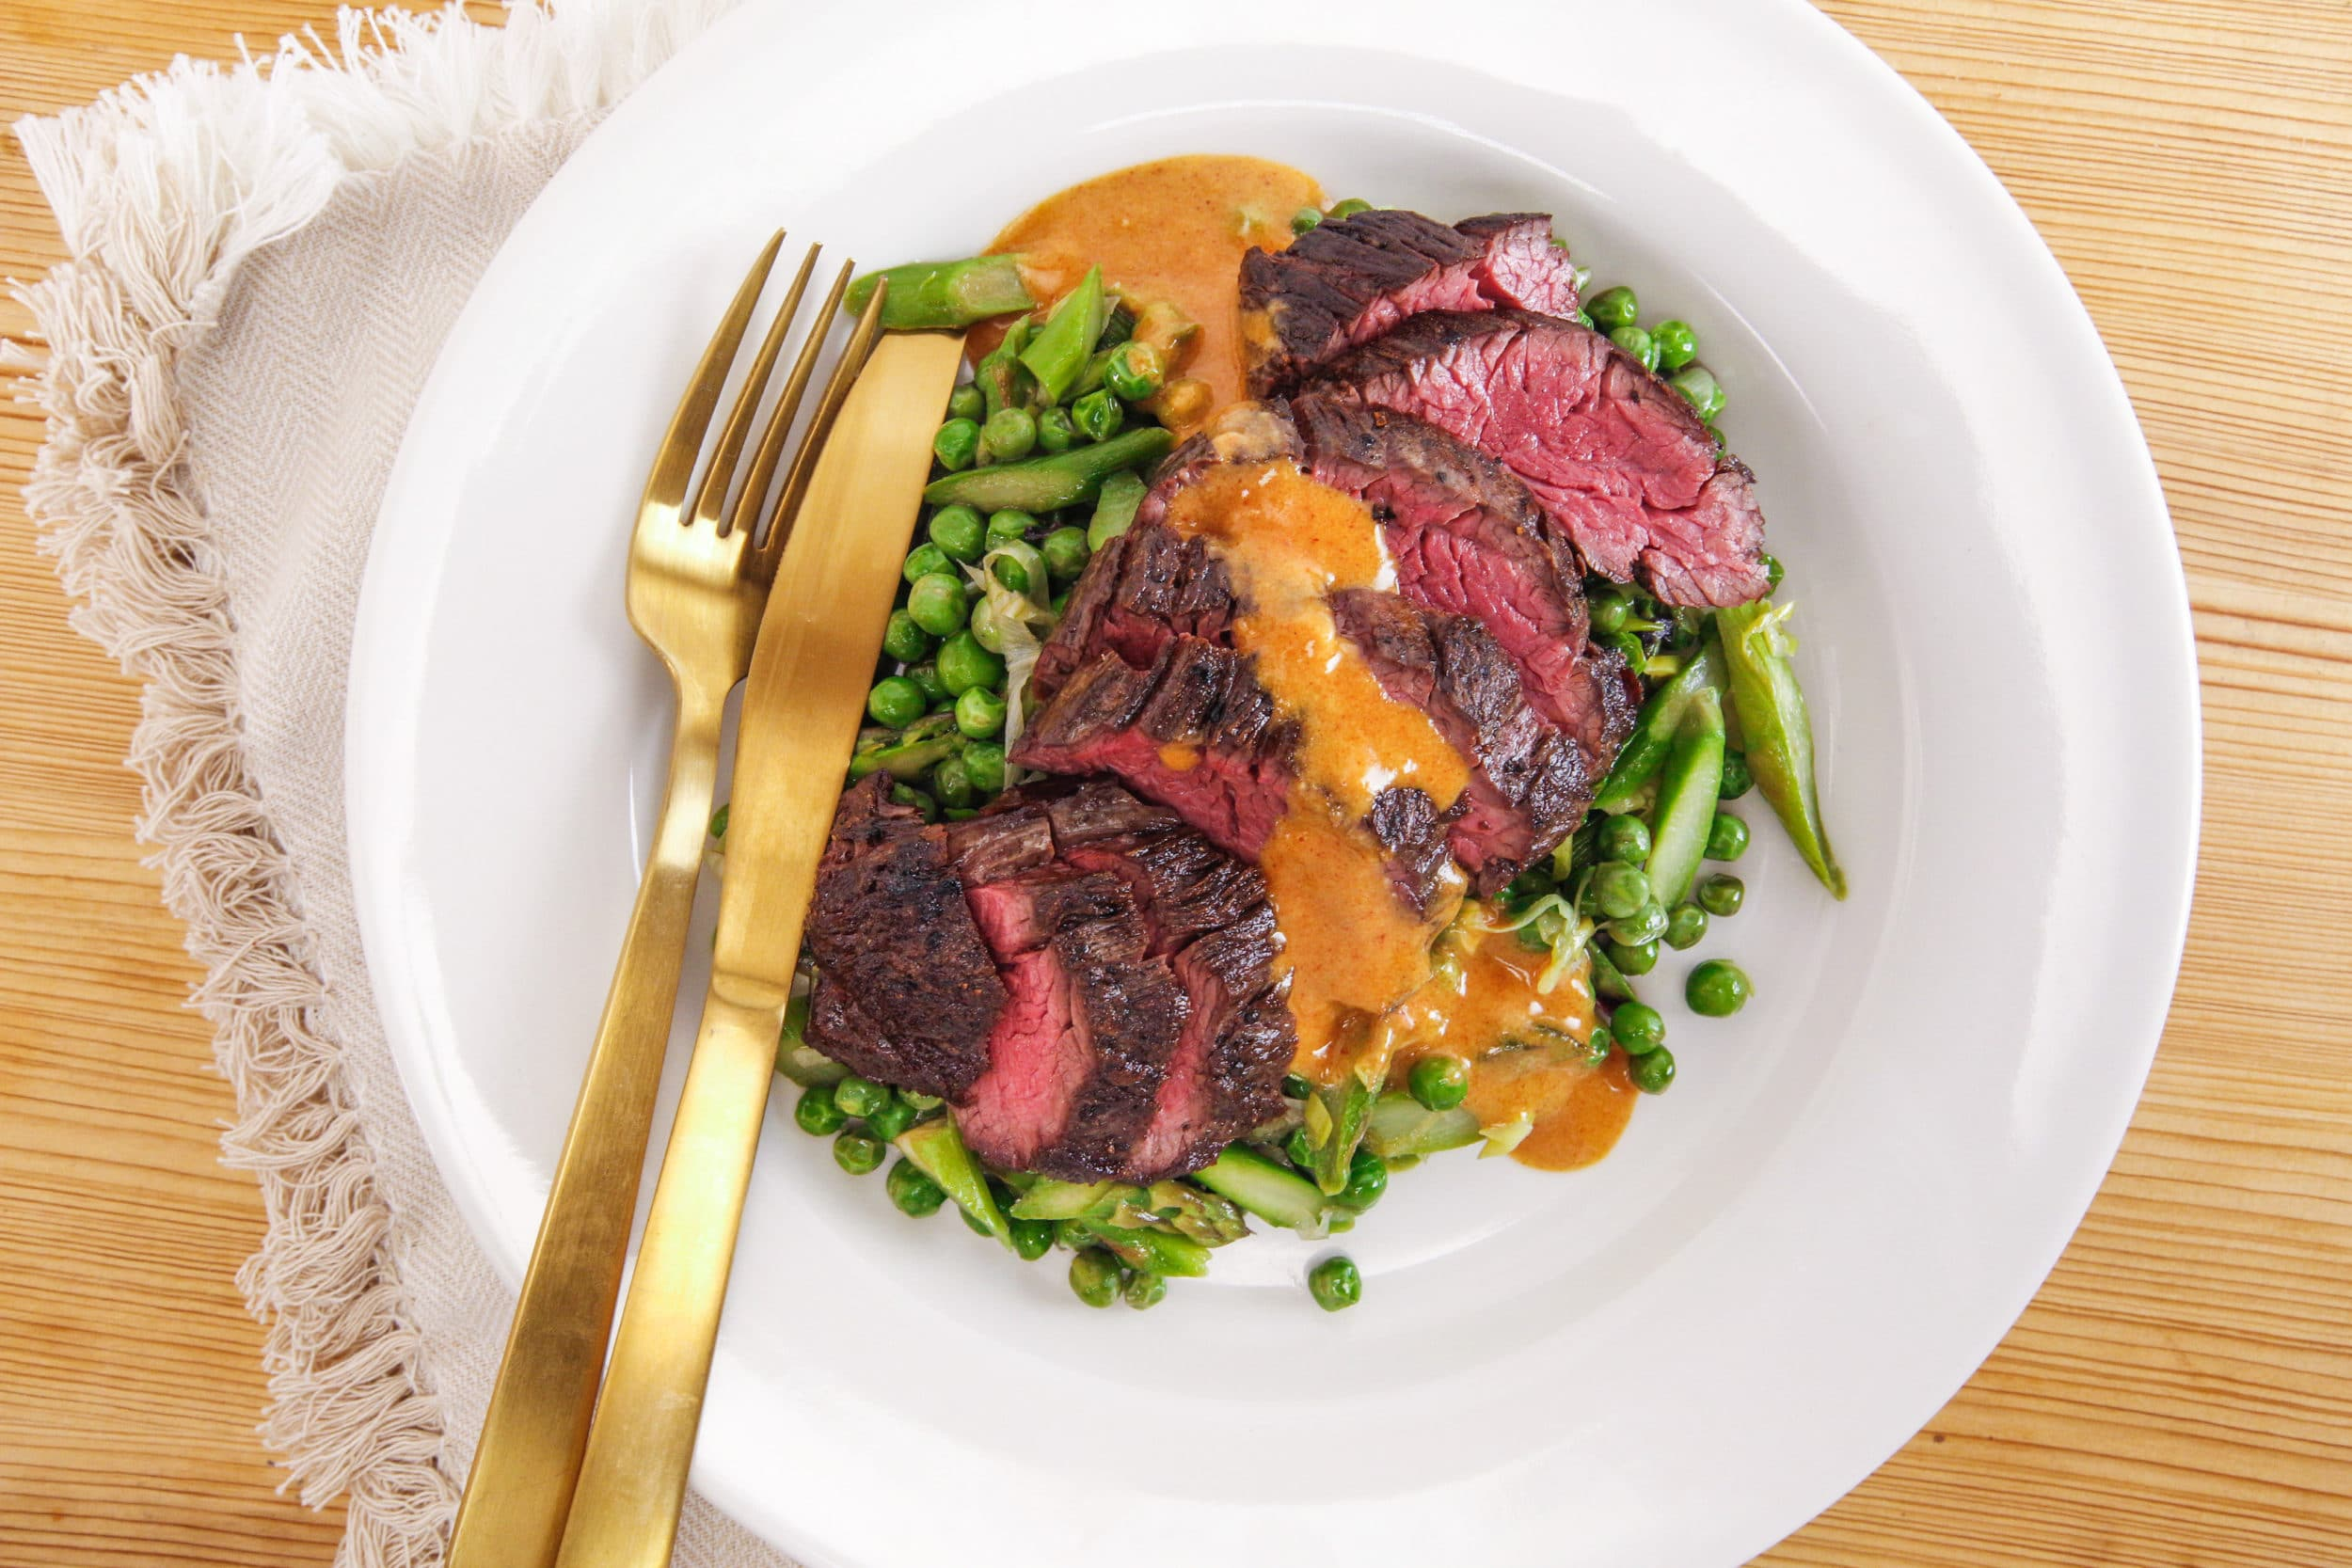 Rachael's Sliced Hanger Steak with Smoky Mustard Dressing and Spring Vegetables with Shallots and Greens